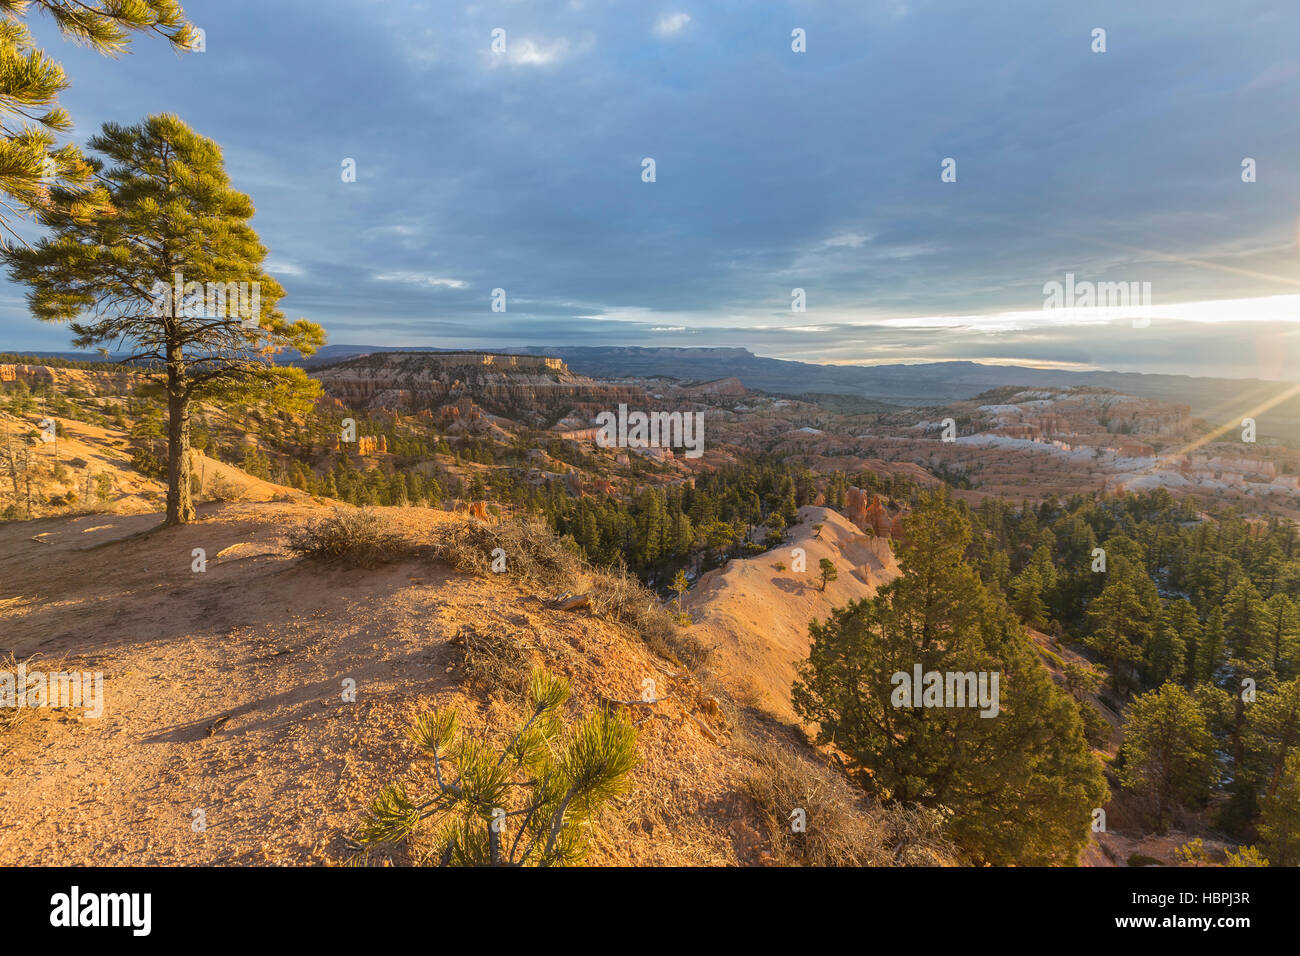 Sunrise view at Bryce Canyon National Park in Southern Utah; Stock Photo